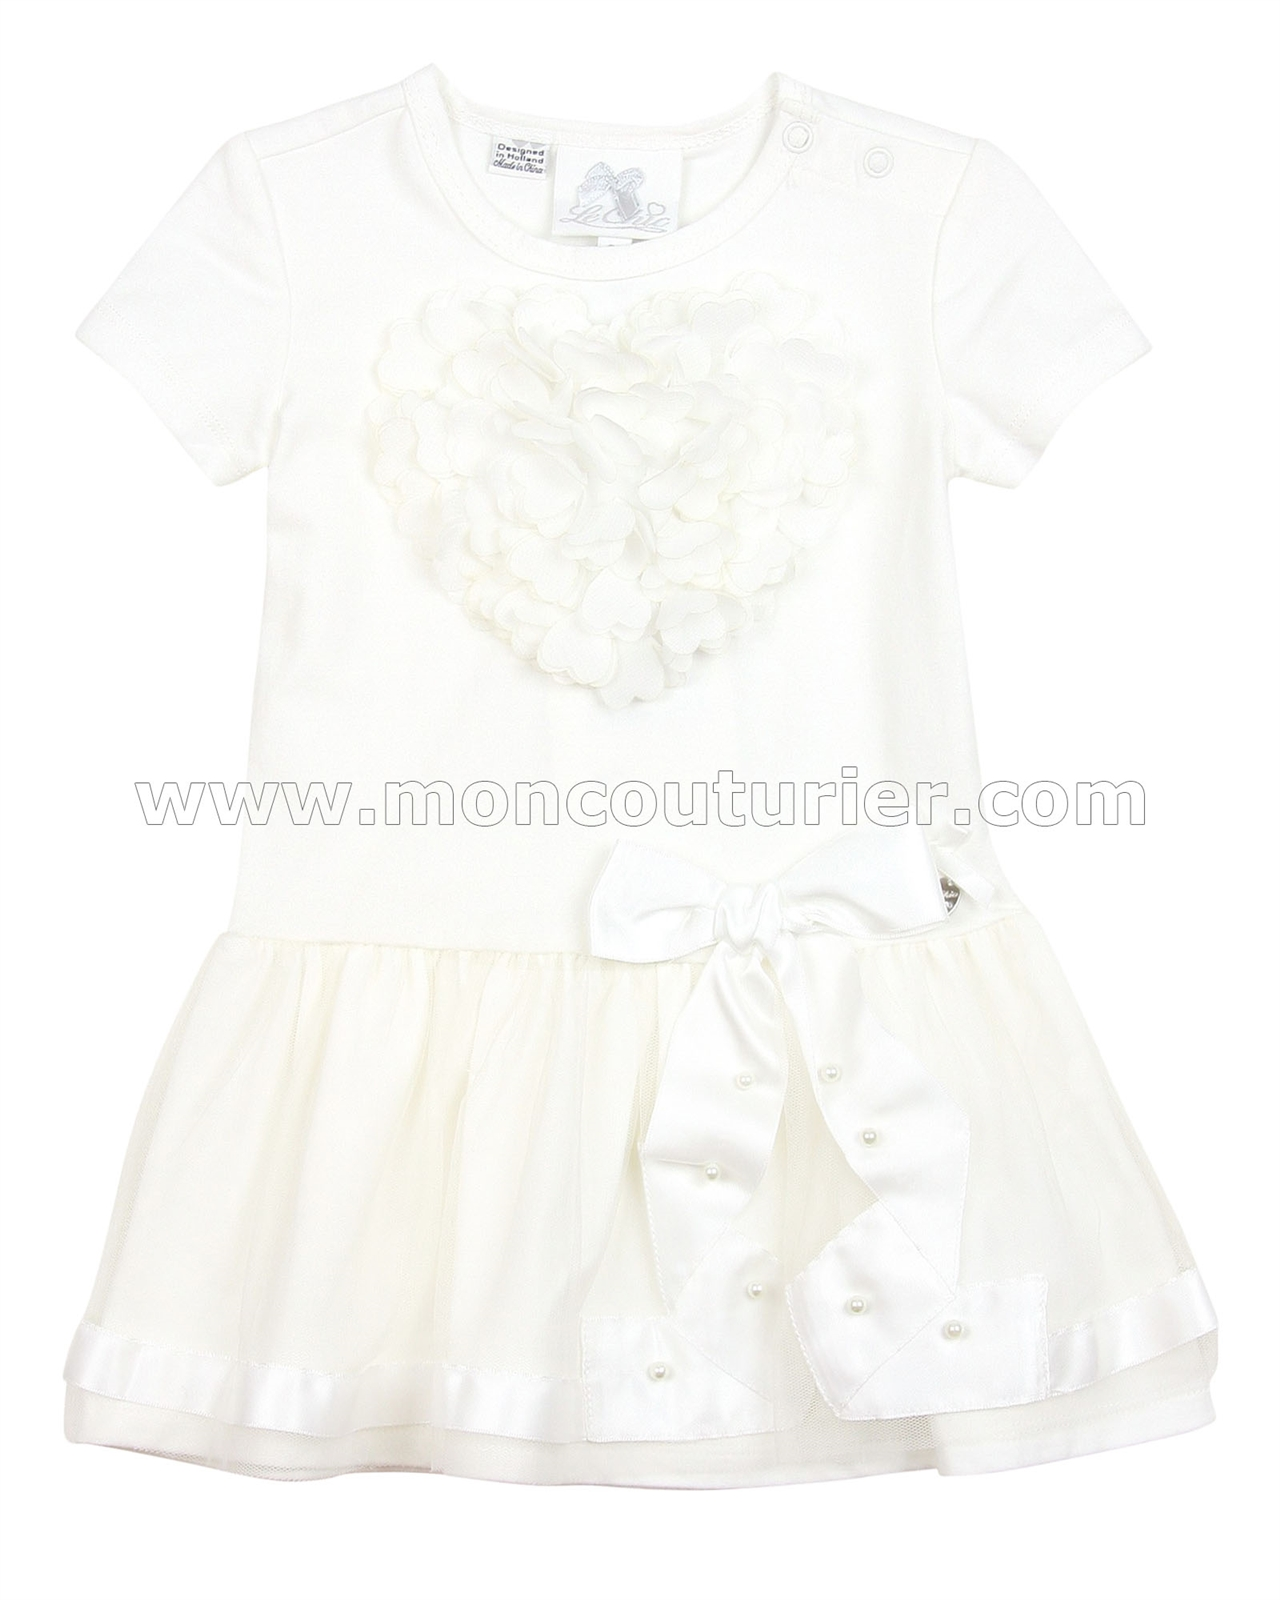 Le Chic Baby Girl Dress with Heart Le Chic Le Chic Spring 2016